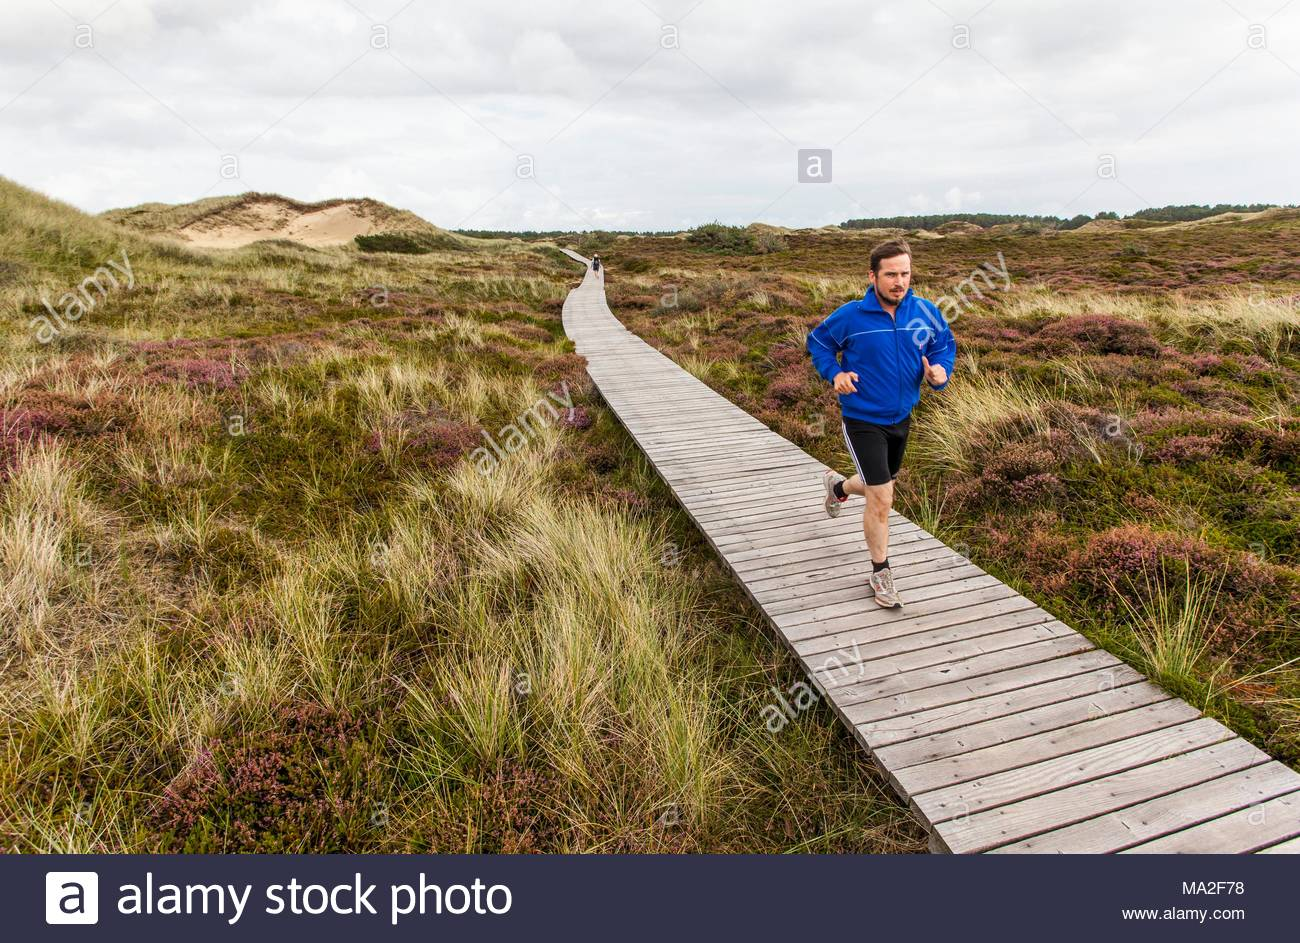 A jogger running along a boardwalk, Amrum - Stock Image